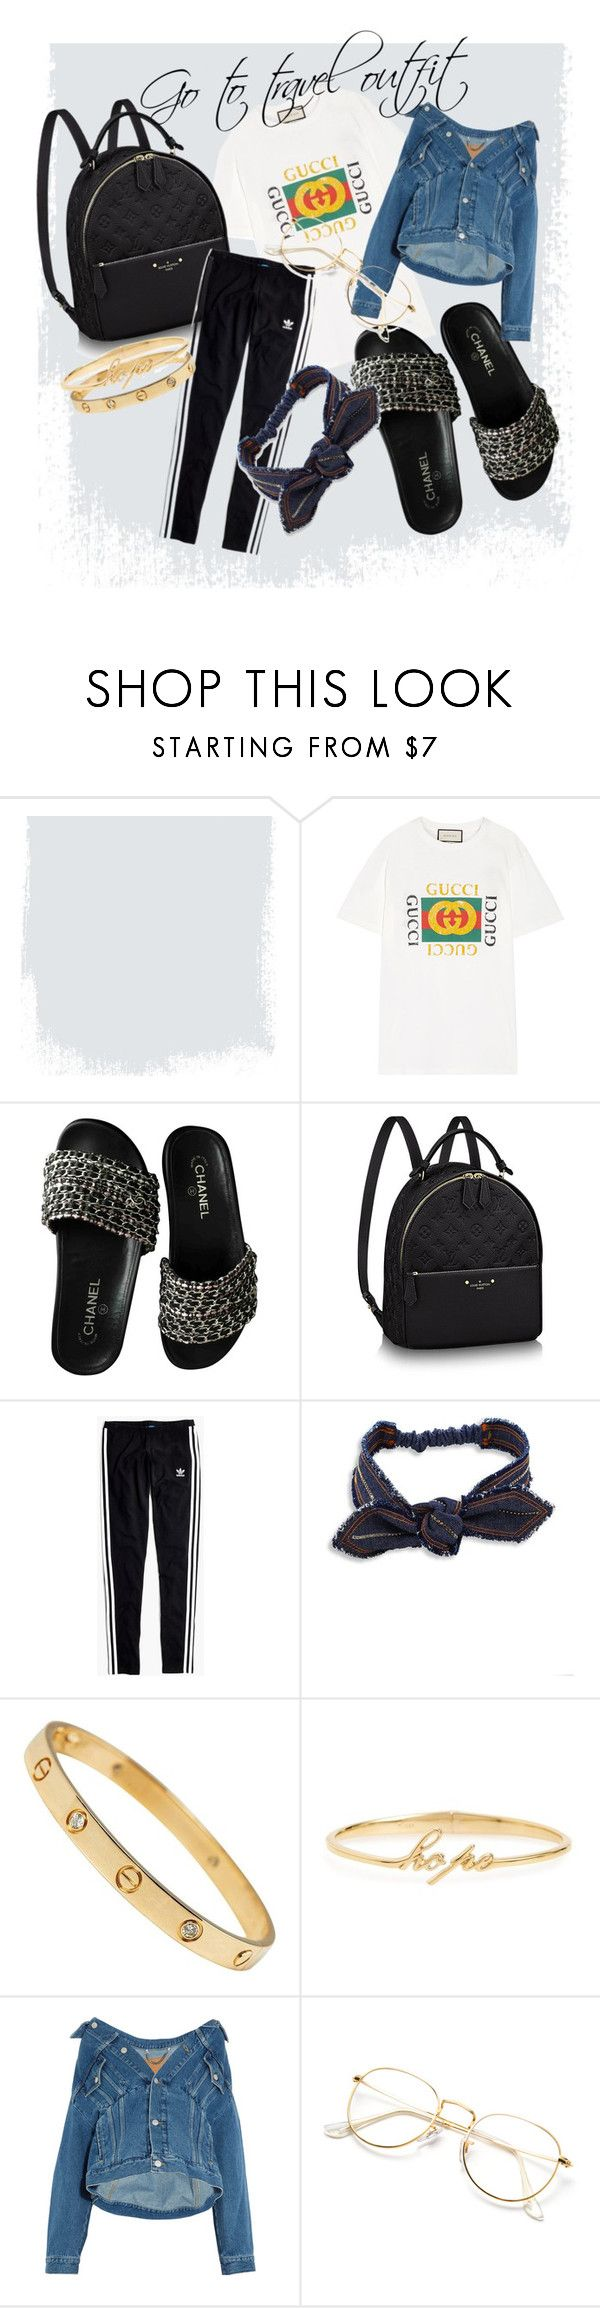 """Go to travel"" by janet241124 ❤ liked on Polyvore featuring Gucci, Chanel, Madewell, Colette Malouf, Judith Jack and Balenciaga"